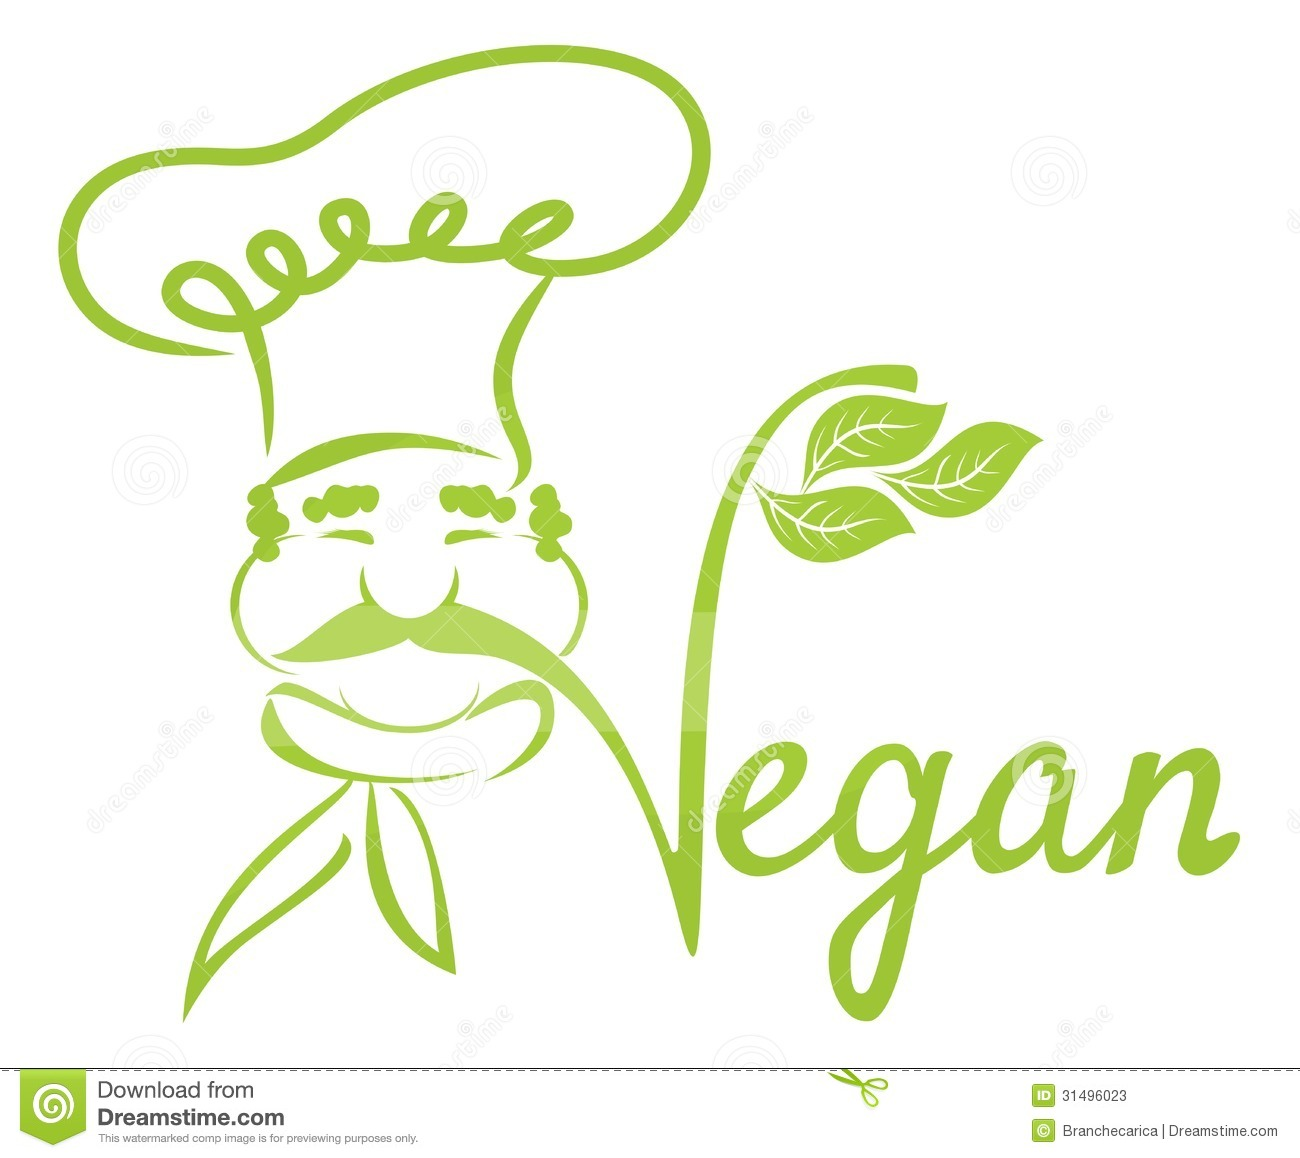 how to become a vegan chef